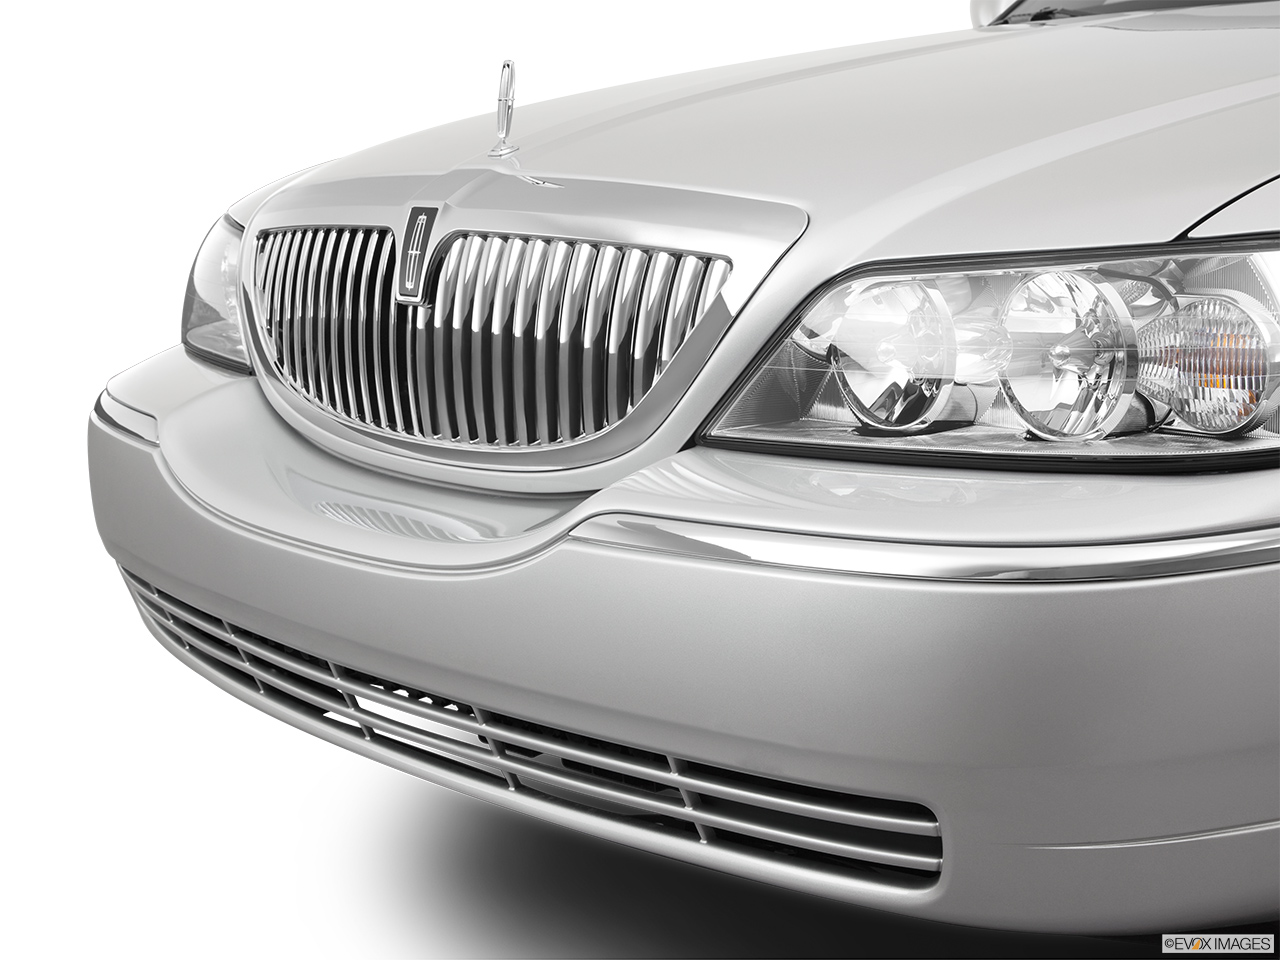 2011 Lincoln Town Car Signature Limited Close up of Grill.